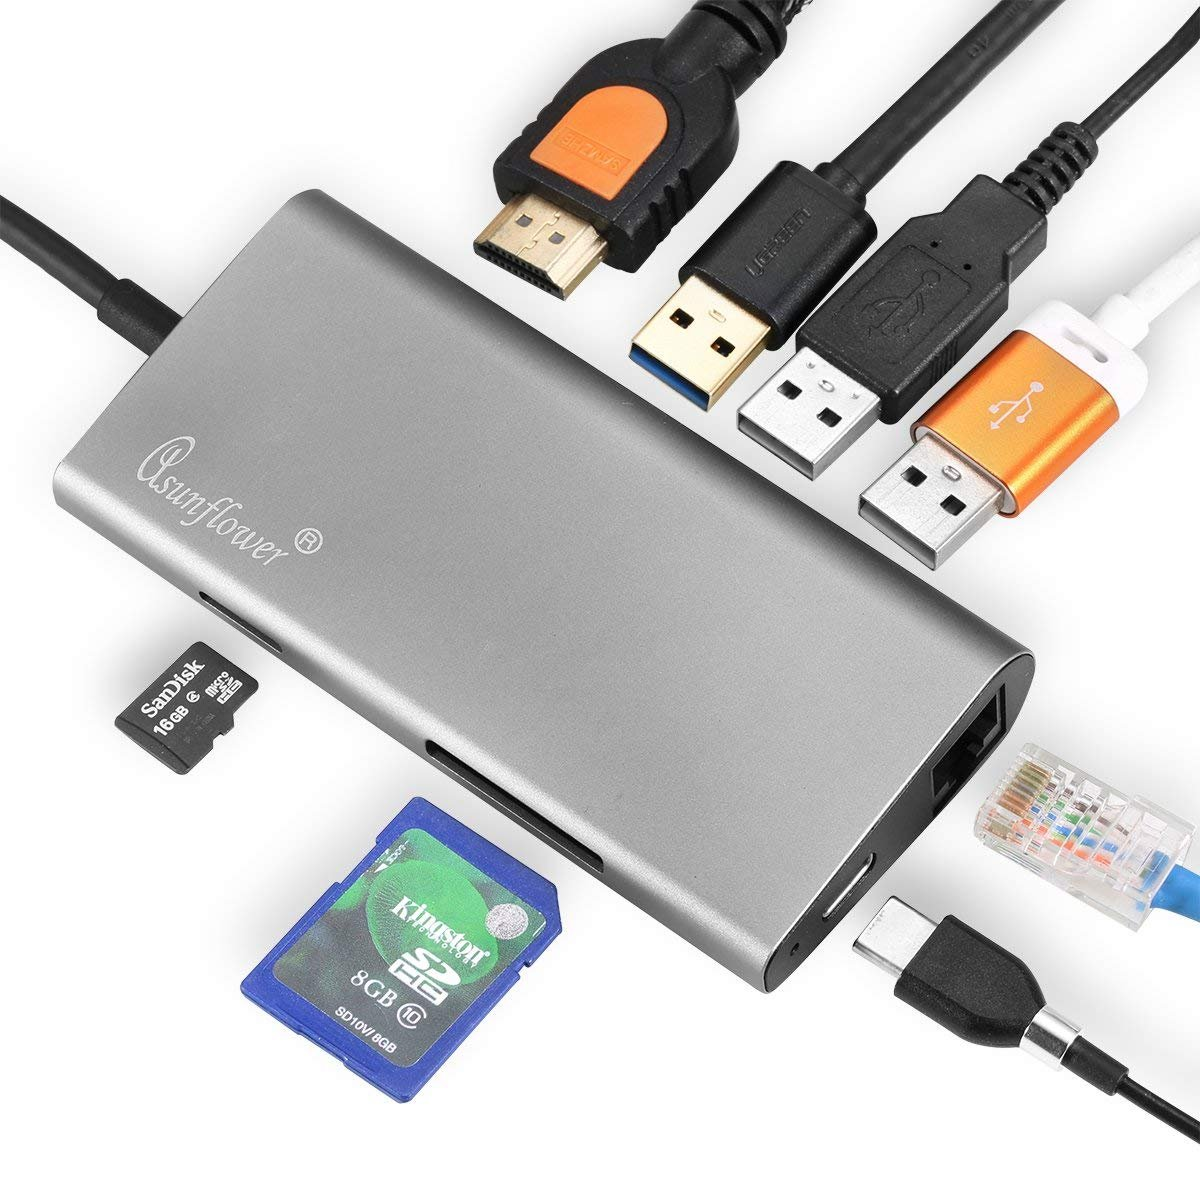 Asunflower USB C Hub, 8 in 1 Multi Port Adapter Type C to HDMI, USB 3.0 Ports, SD Card Reader, Ethernet Port, Type-C PD Charging Port, Combo Hub for MacBook Pro, Chromebook and USB C Devices